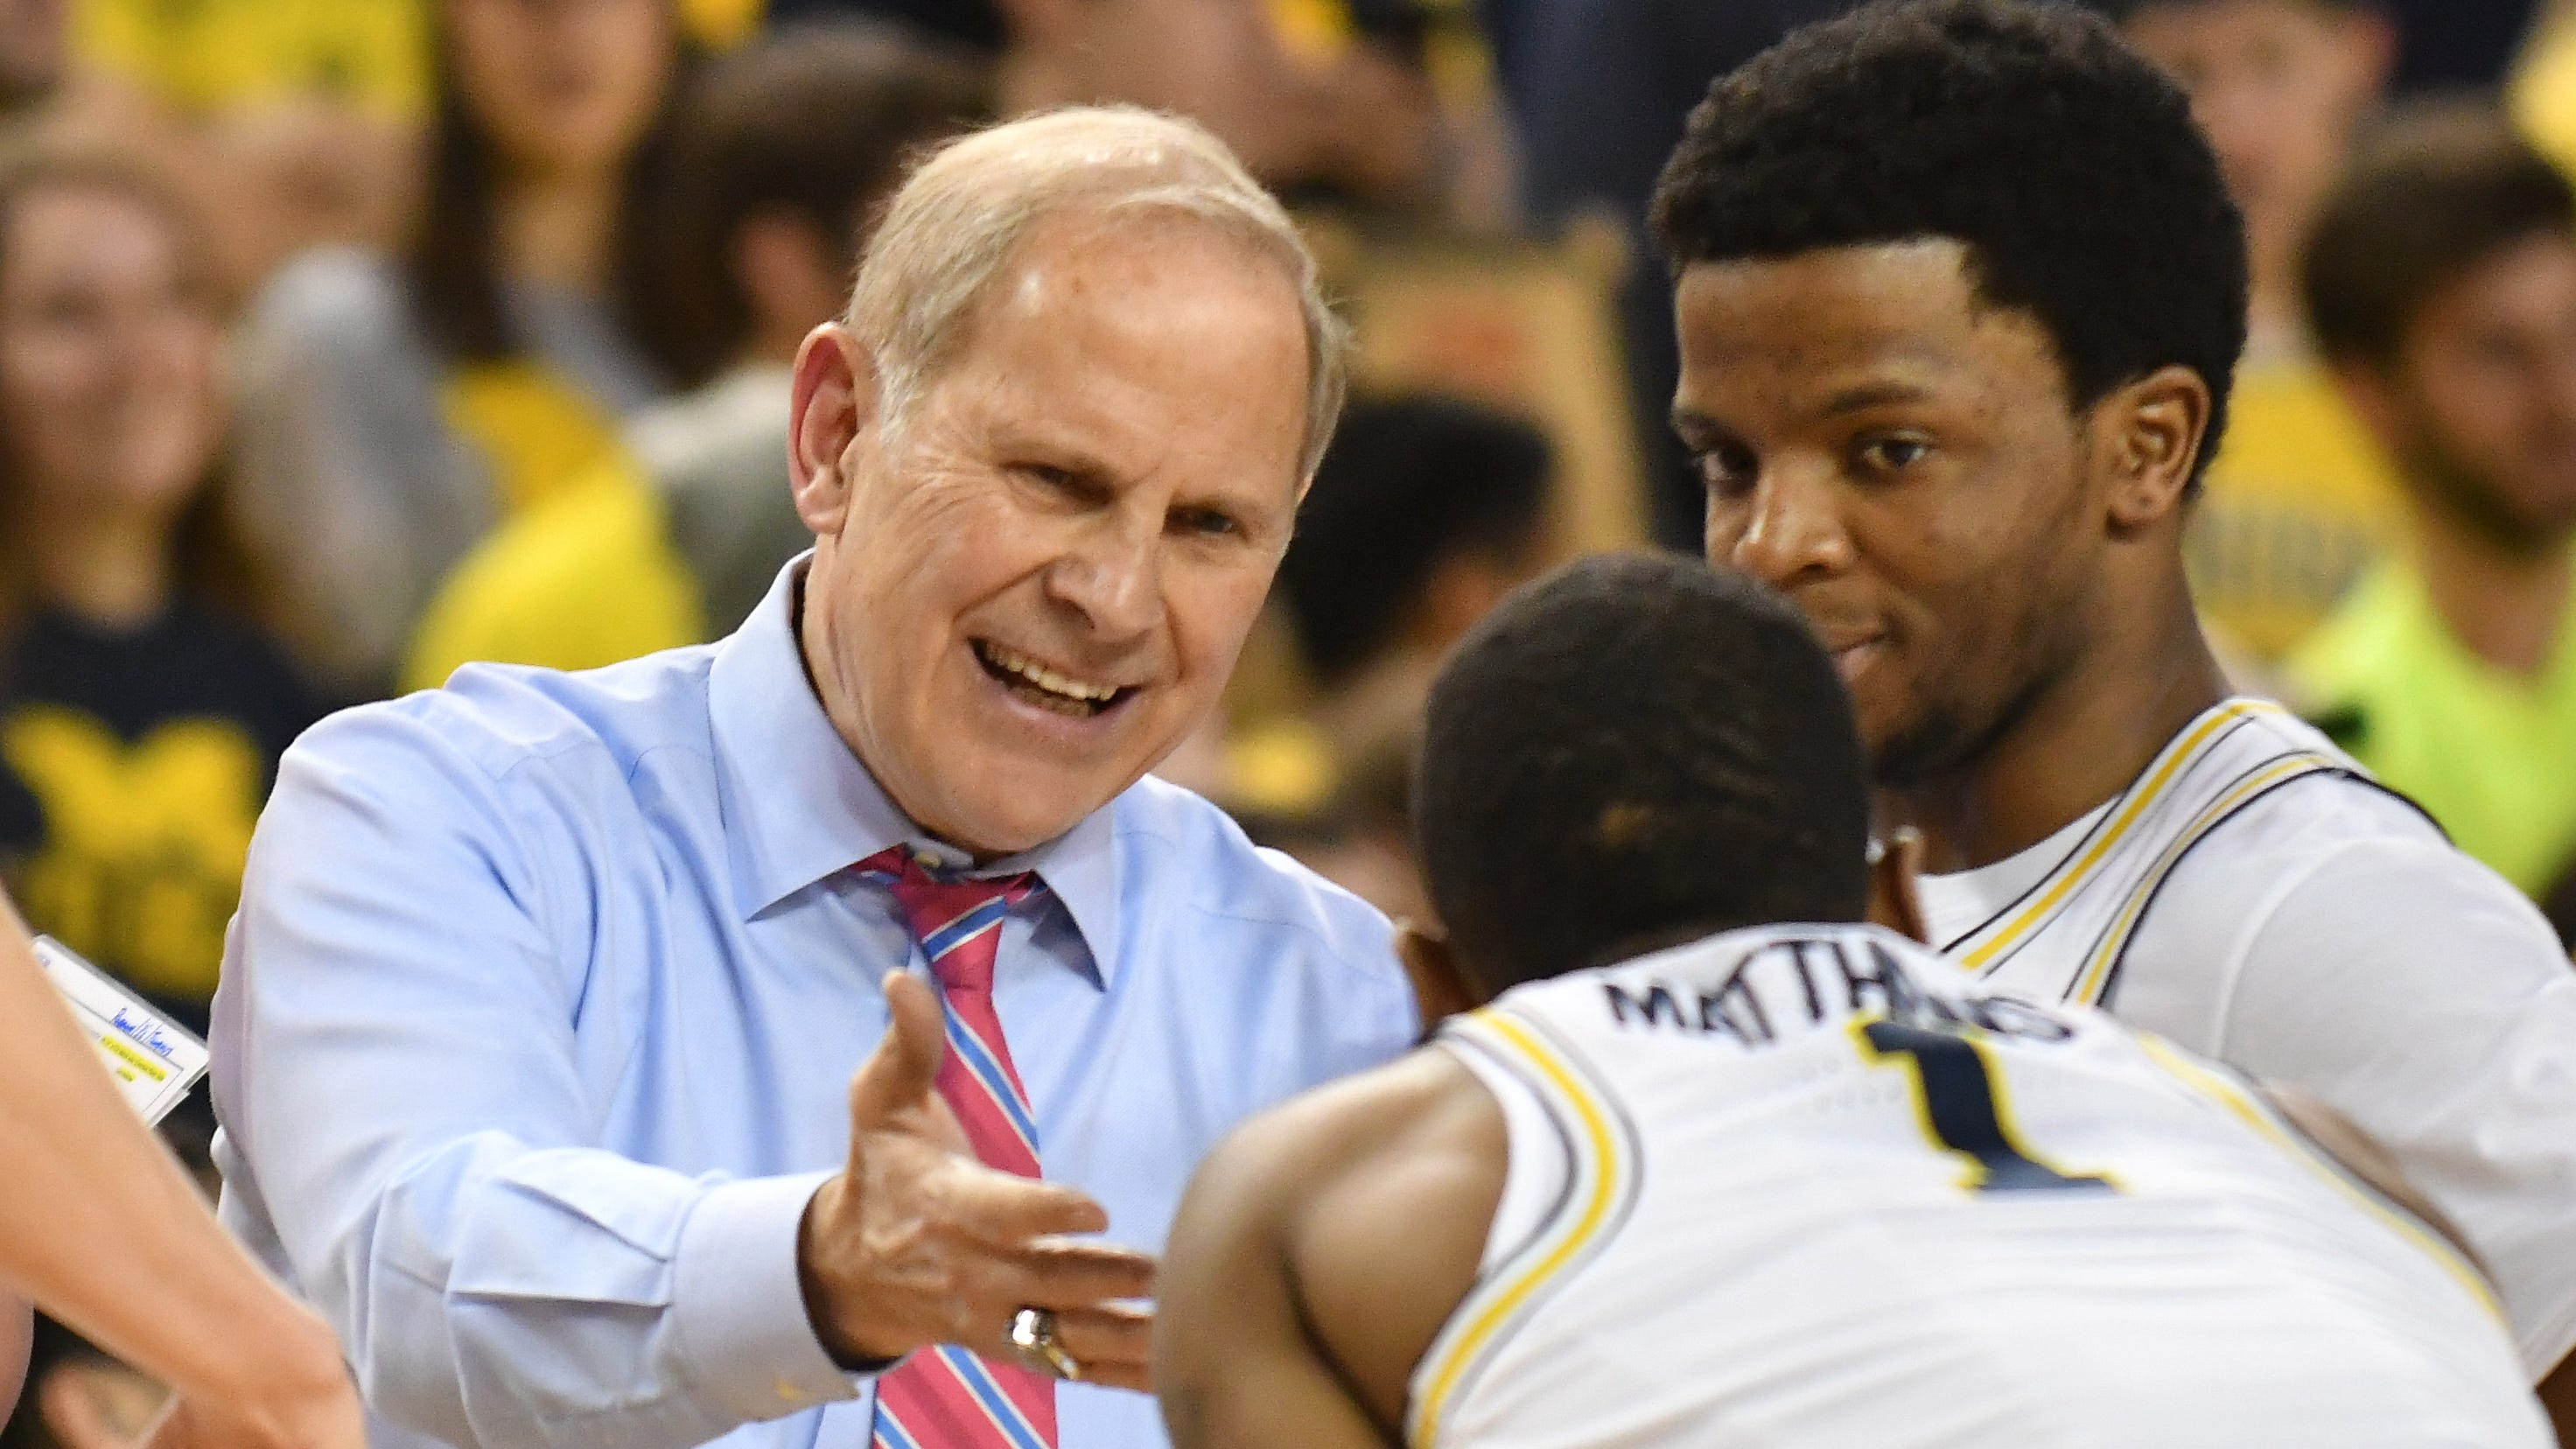 UM's John Beilein 'proud' to see banners go up tonight